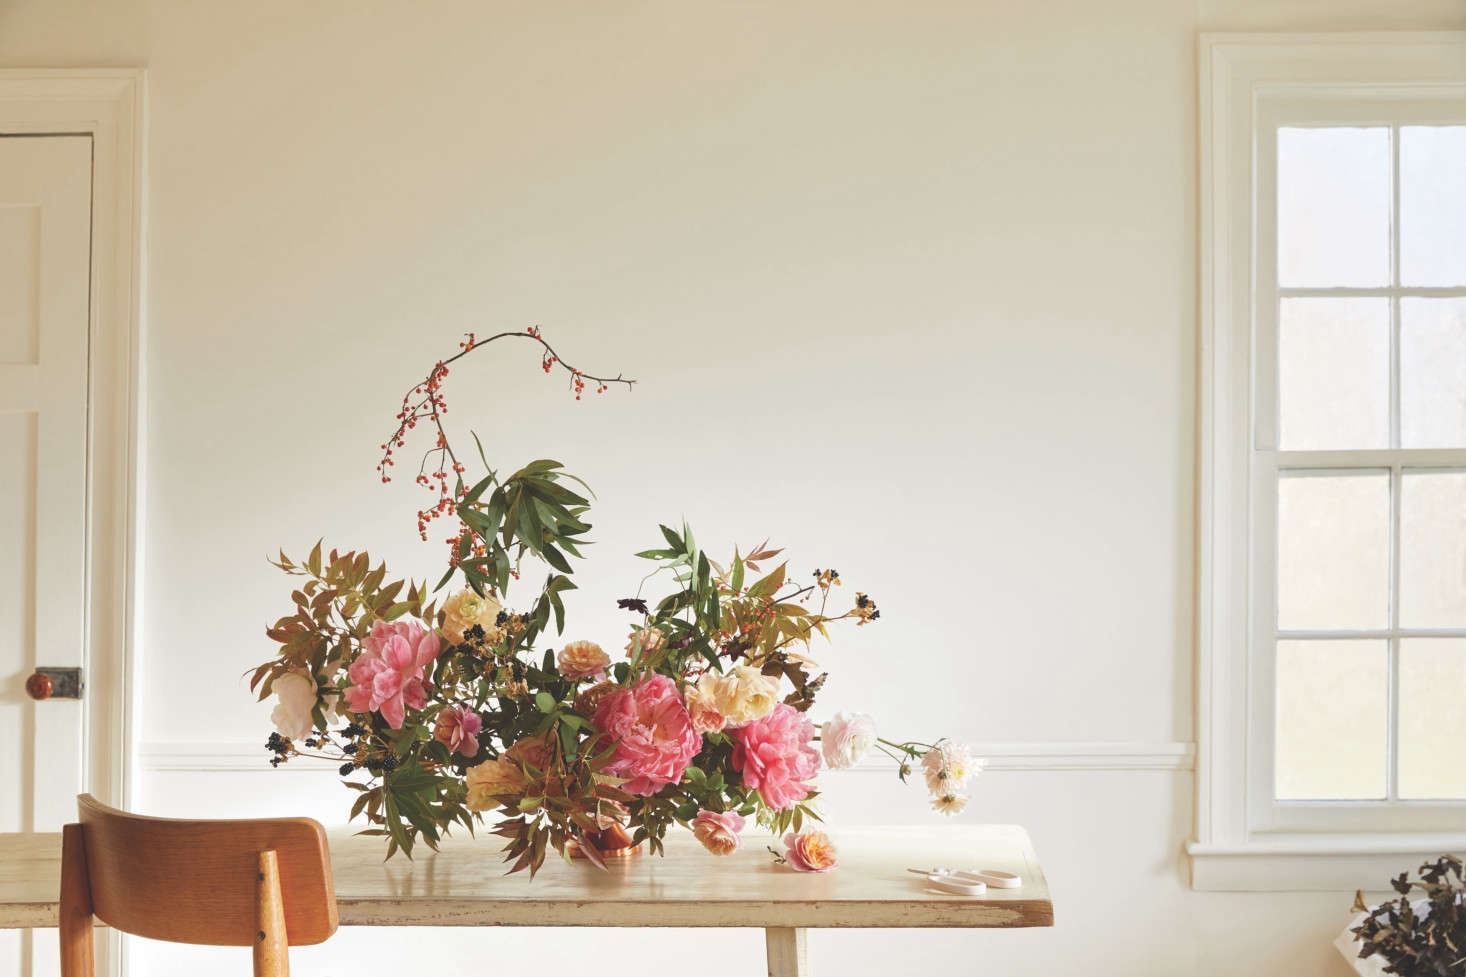 A centerpiece made using Arrangement Workshop components, plus the Floral Society's footed Copper Vase, $62 (scroll down to see the vase on its own).